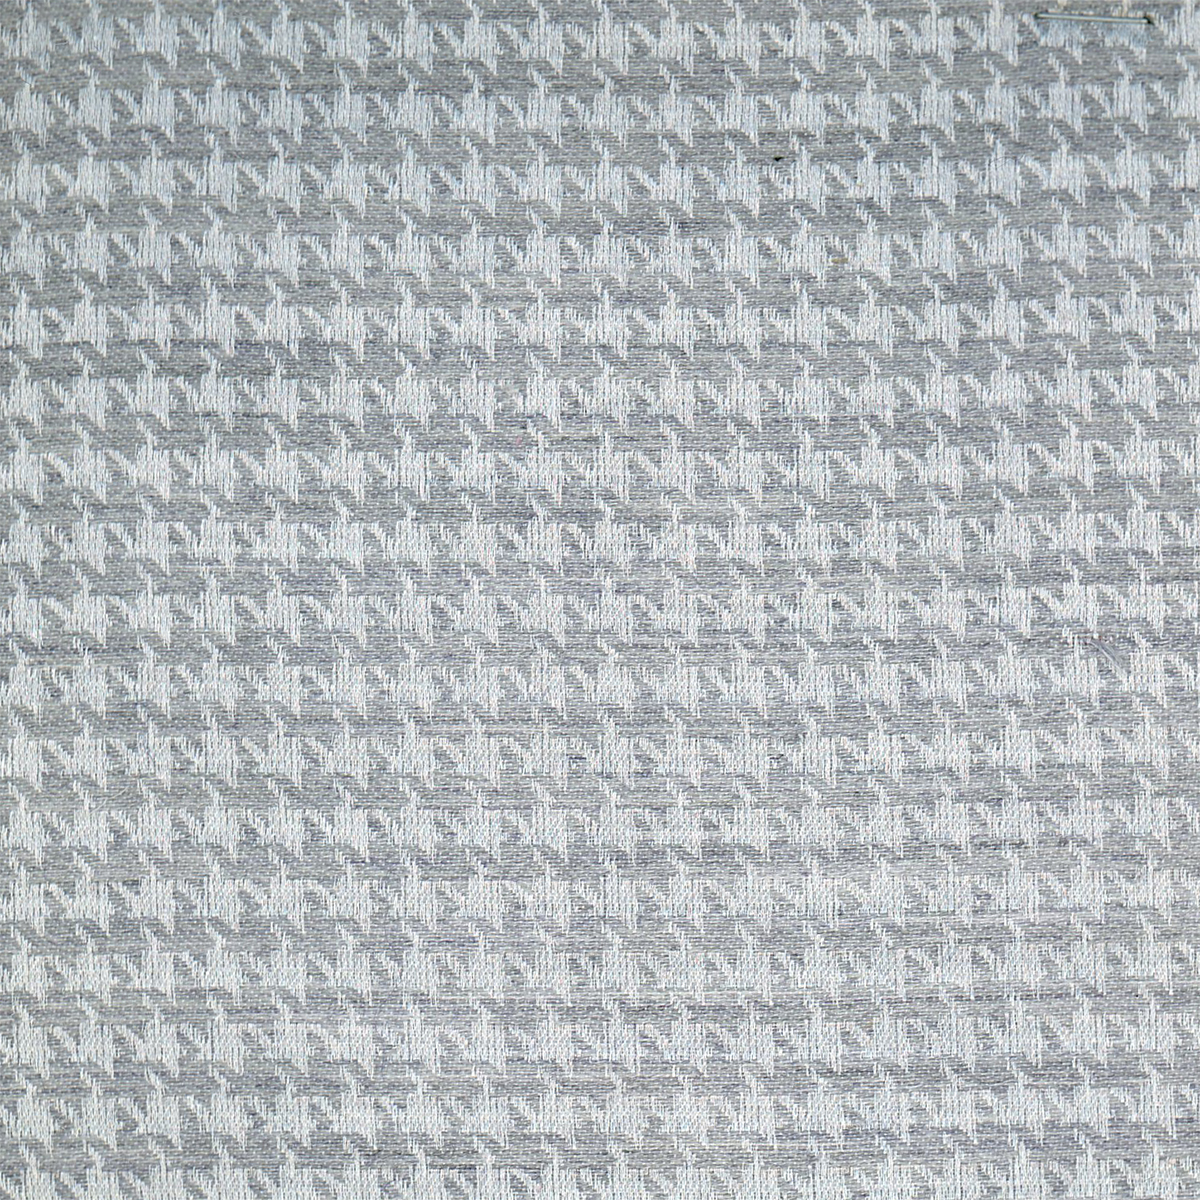 Fabric Polyester Amp Wool Blend Brw5004 002 Grey Richard